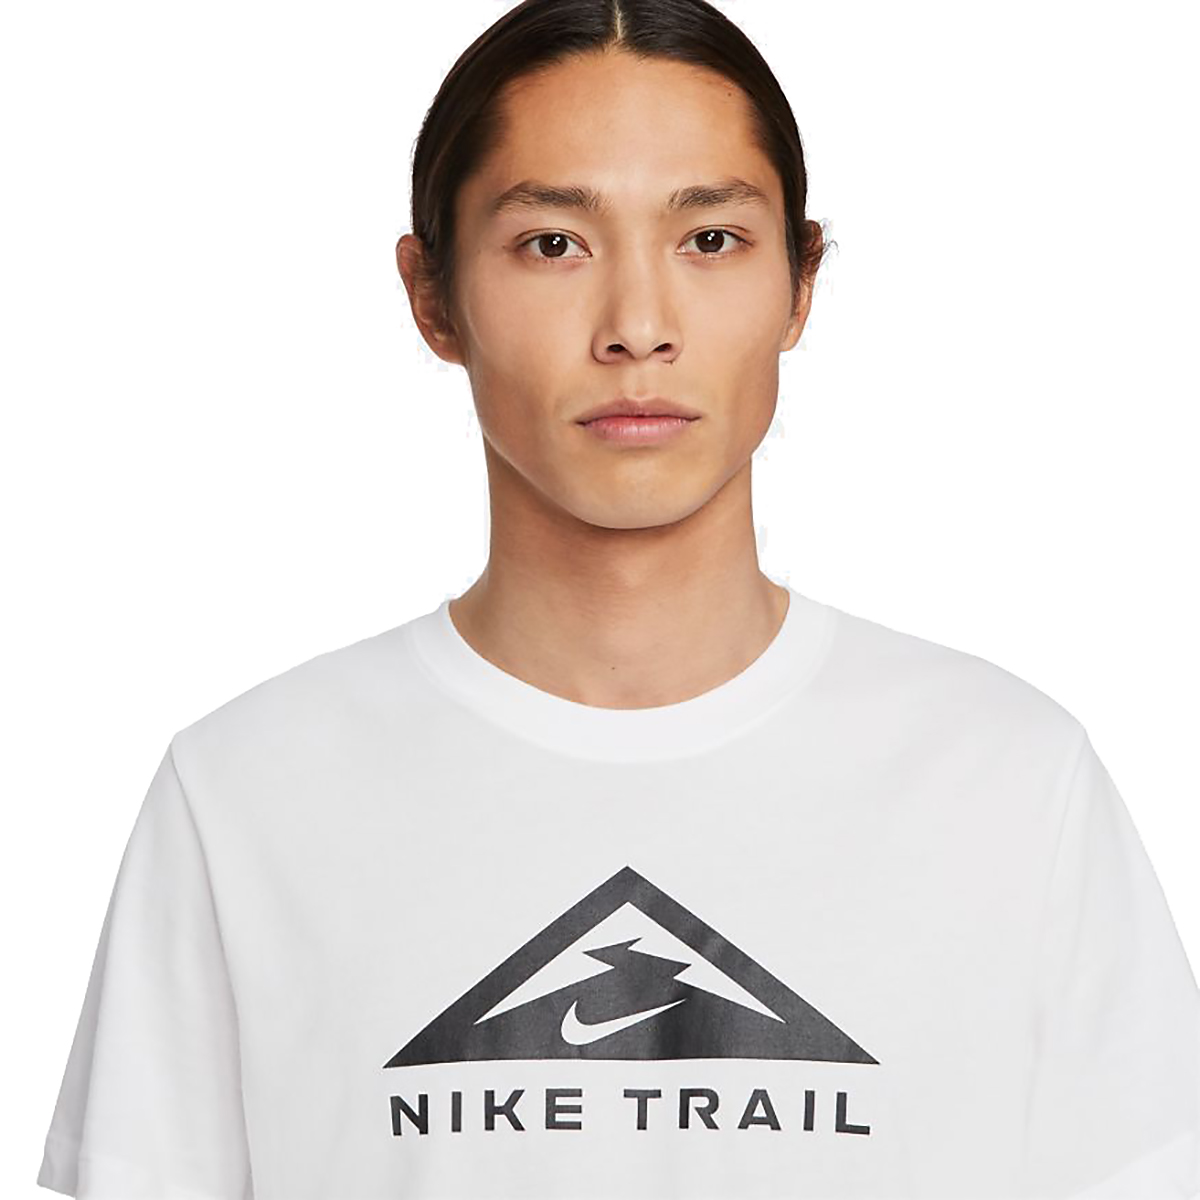 Men's Nike Dri-FIT Short-Sleeve Trail Running T-Shirt - Color: White - Size: XS, White, large, image 4